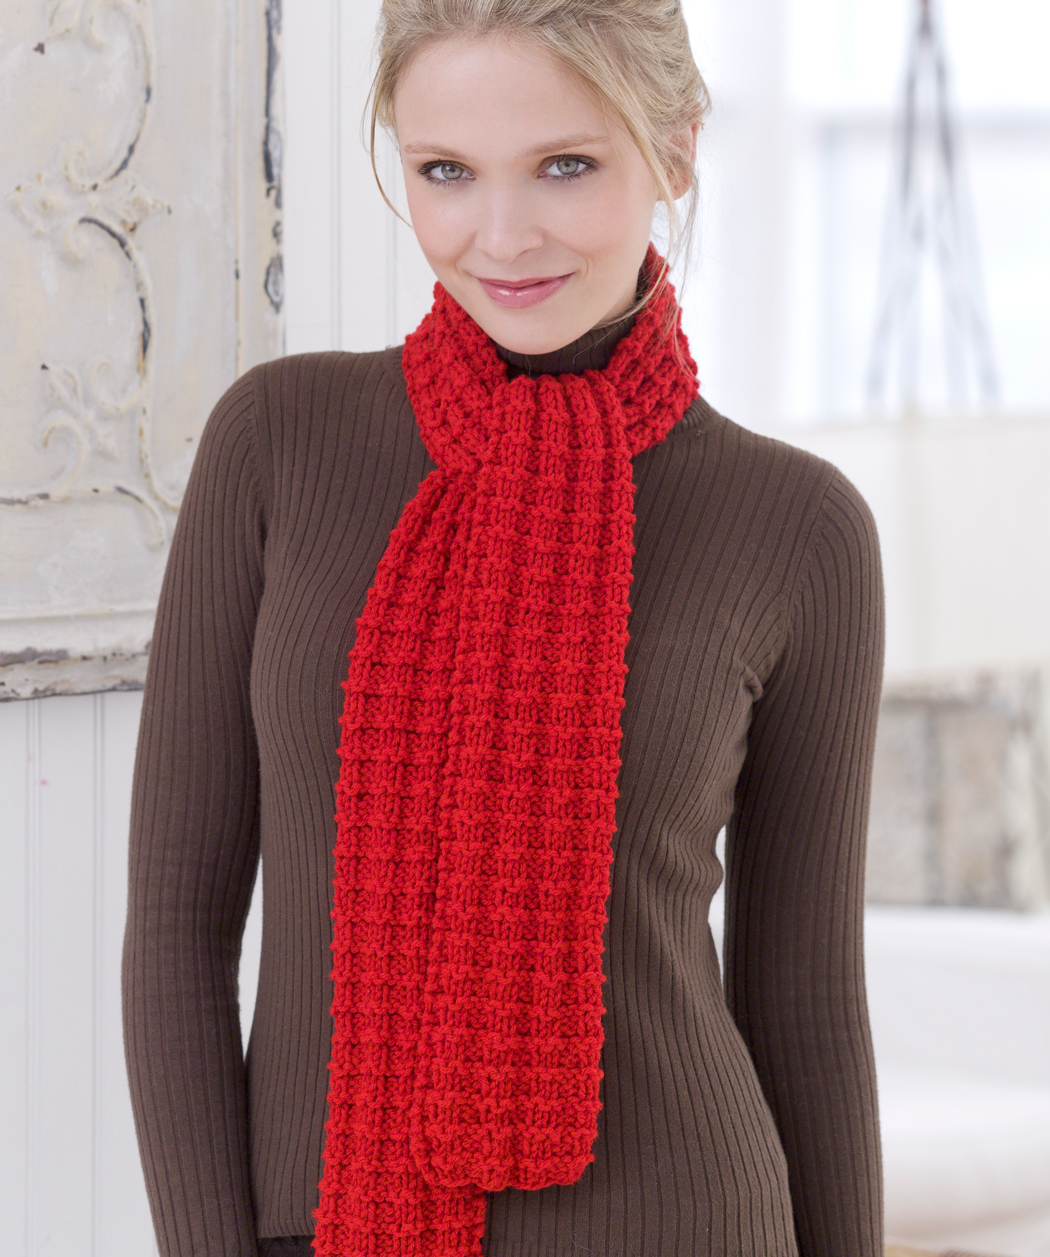 Knitted Scarves Patterns : Rede Mode: Scarves-knitting patterns